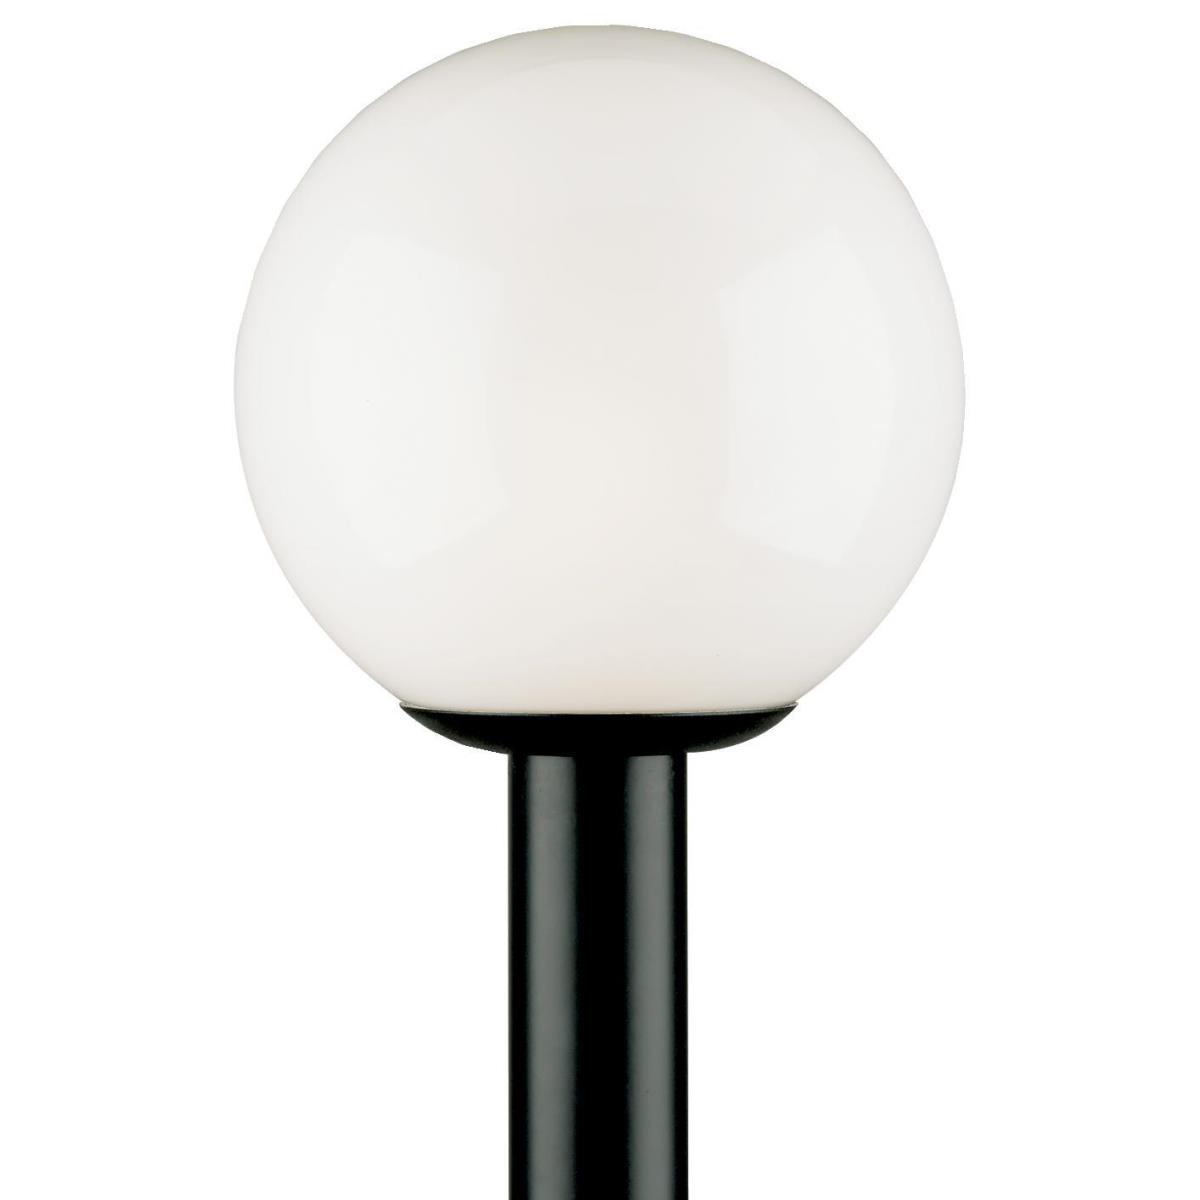 1 Light Polycarbonate Post Top Fixture Black Finish with White Acrylic Globe